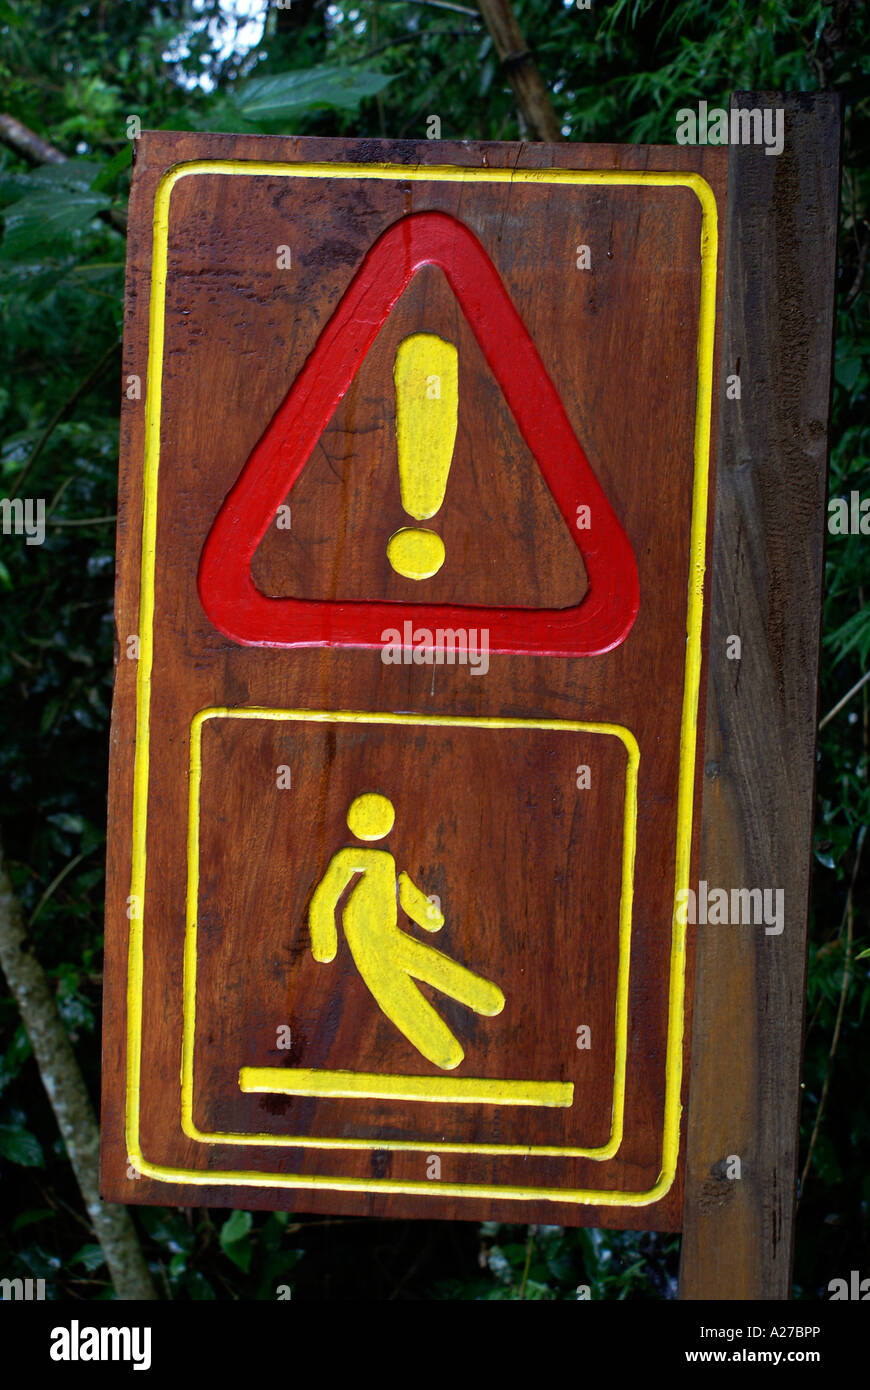 Wooden sign for 'take care, slippery' - Stock Image